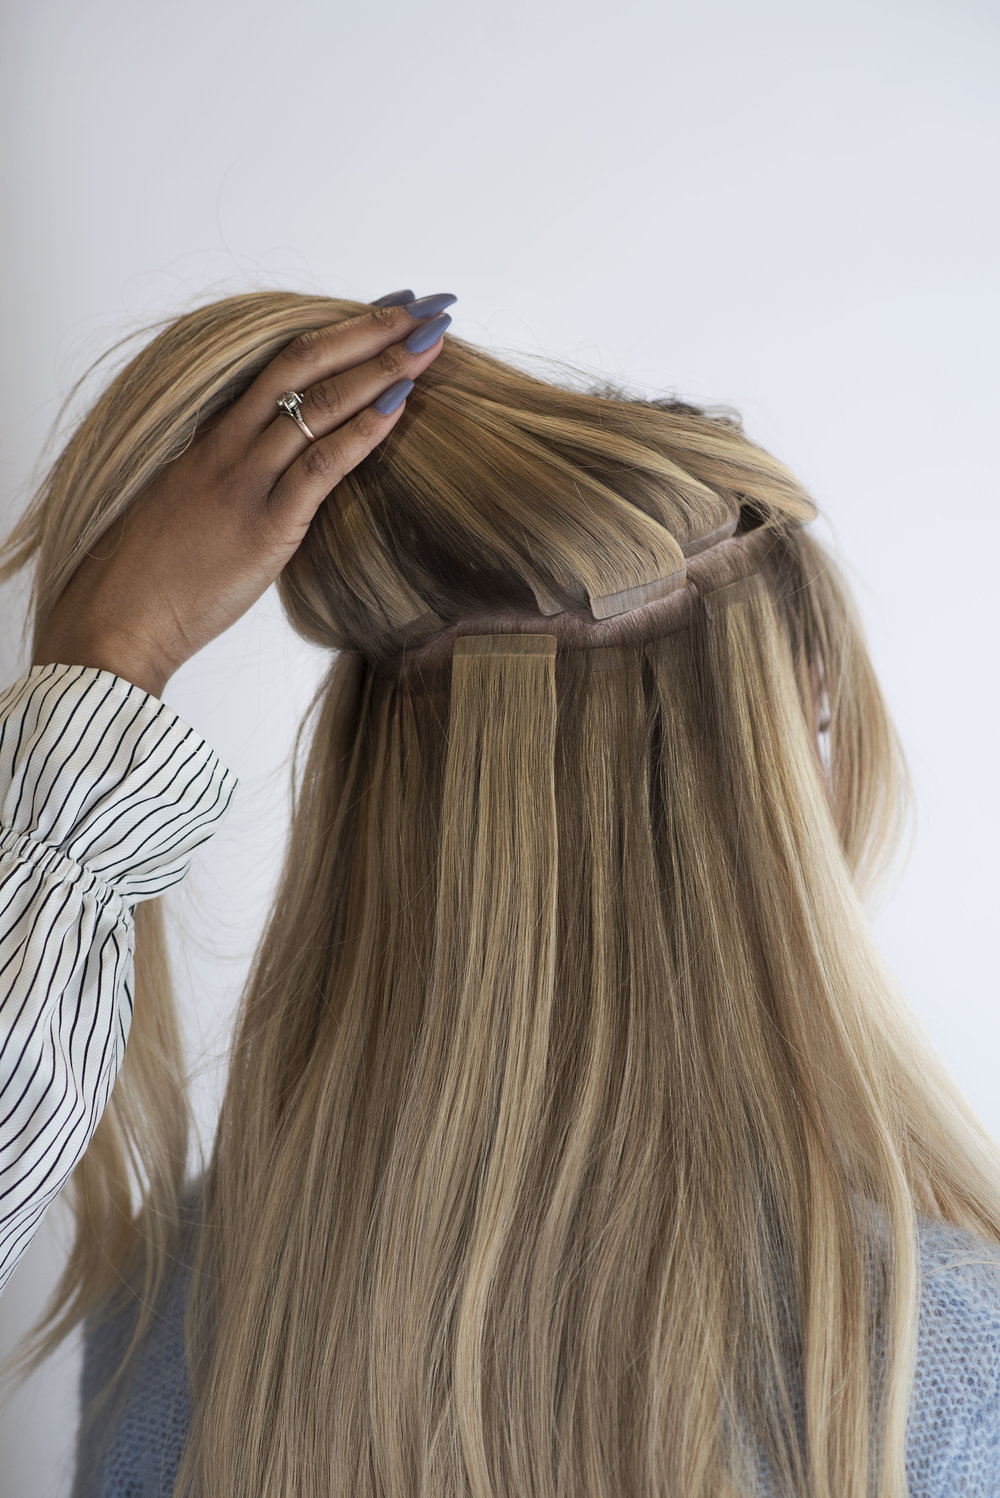 TAPE-IN EXTENSIONS ARE RE-USABLE AND LAY FLAT TO YOUR HEAD. - Extensions by Bailee, styling by Nicole S. and Tivona.